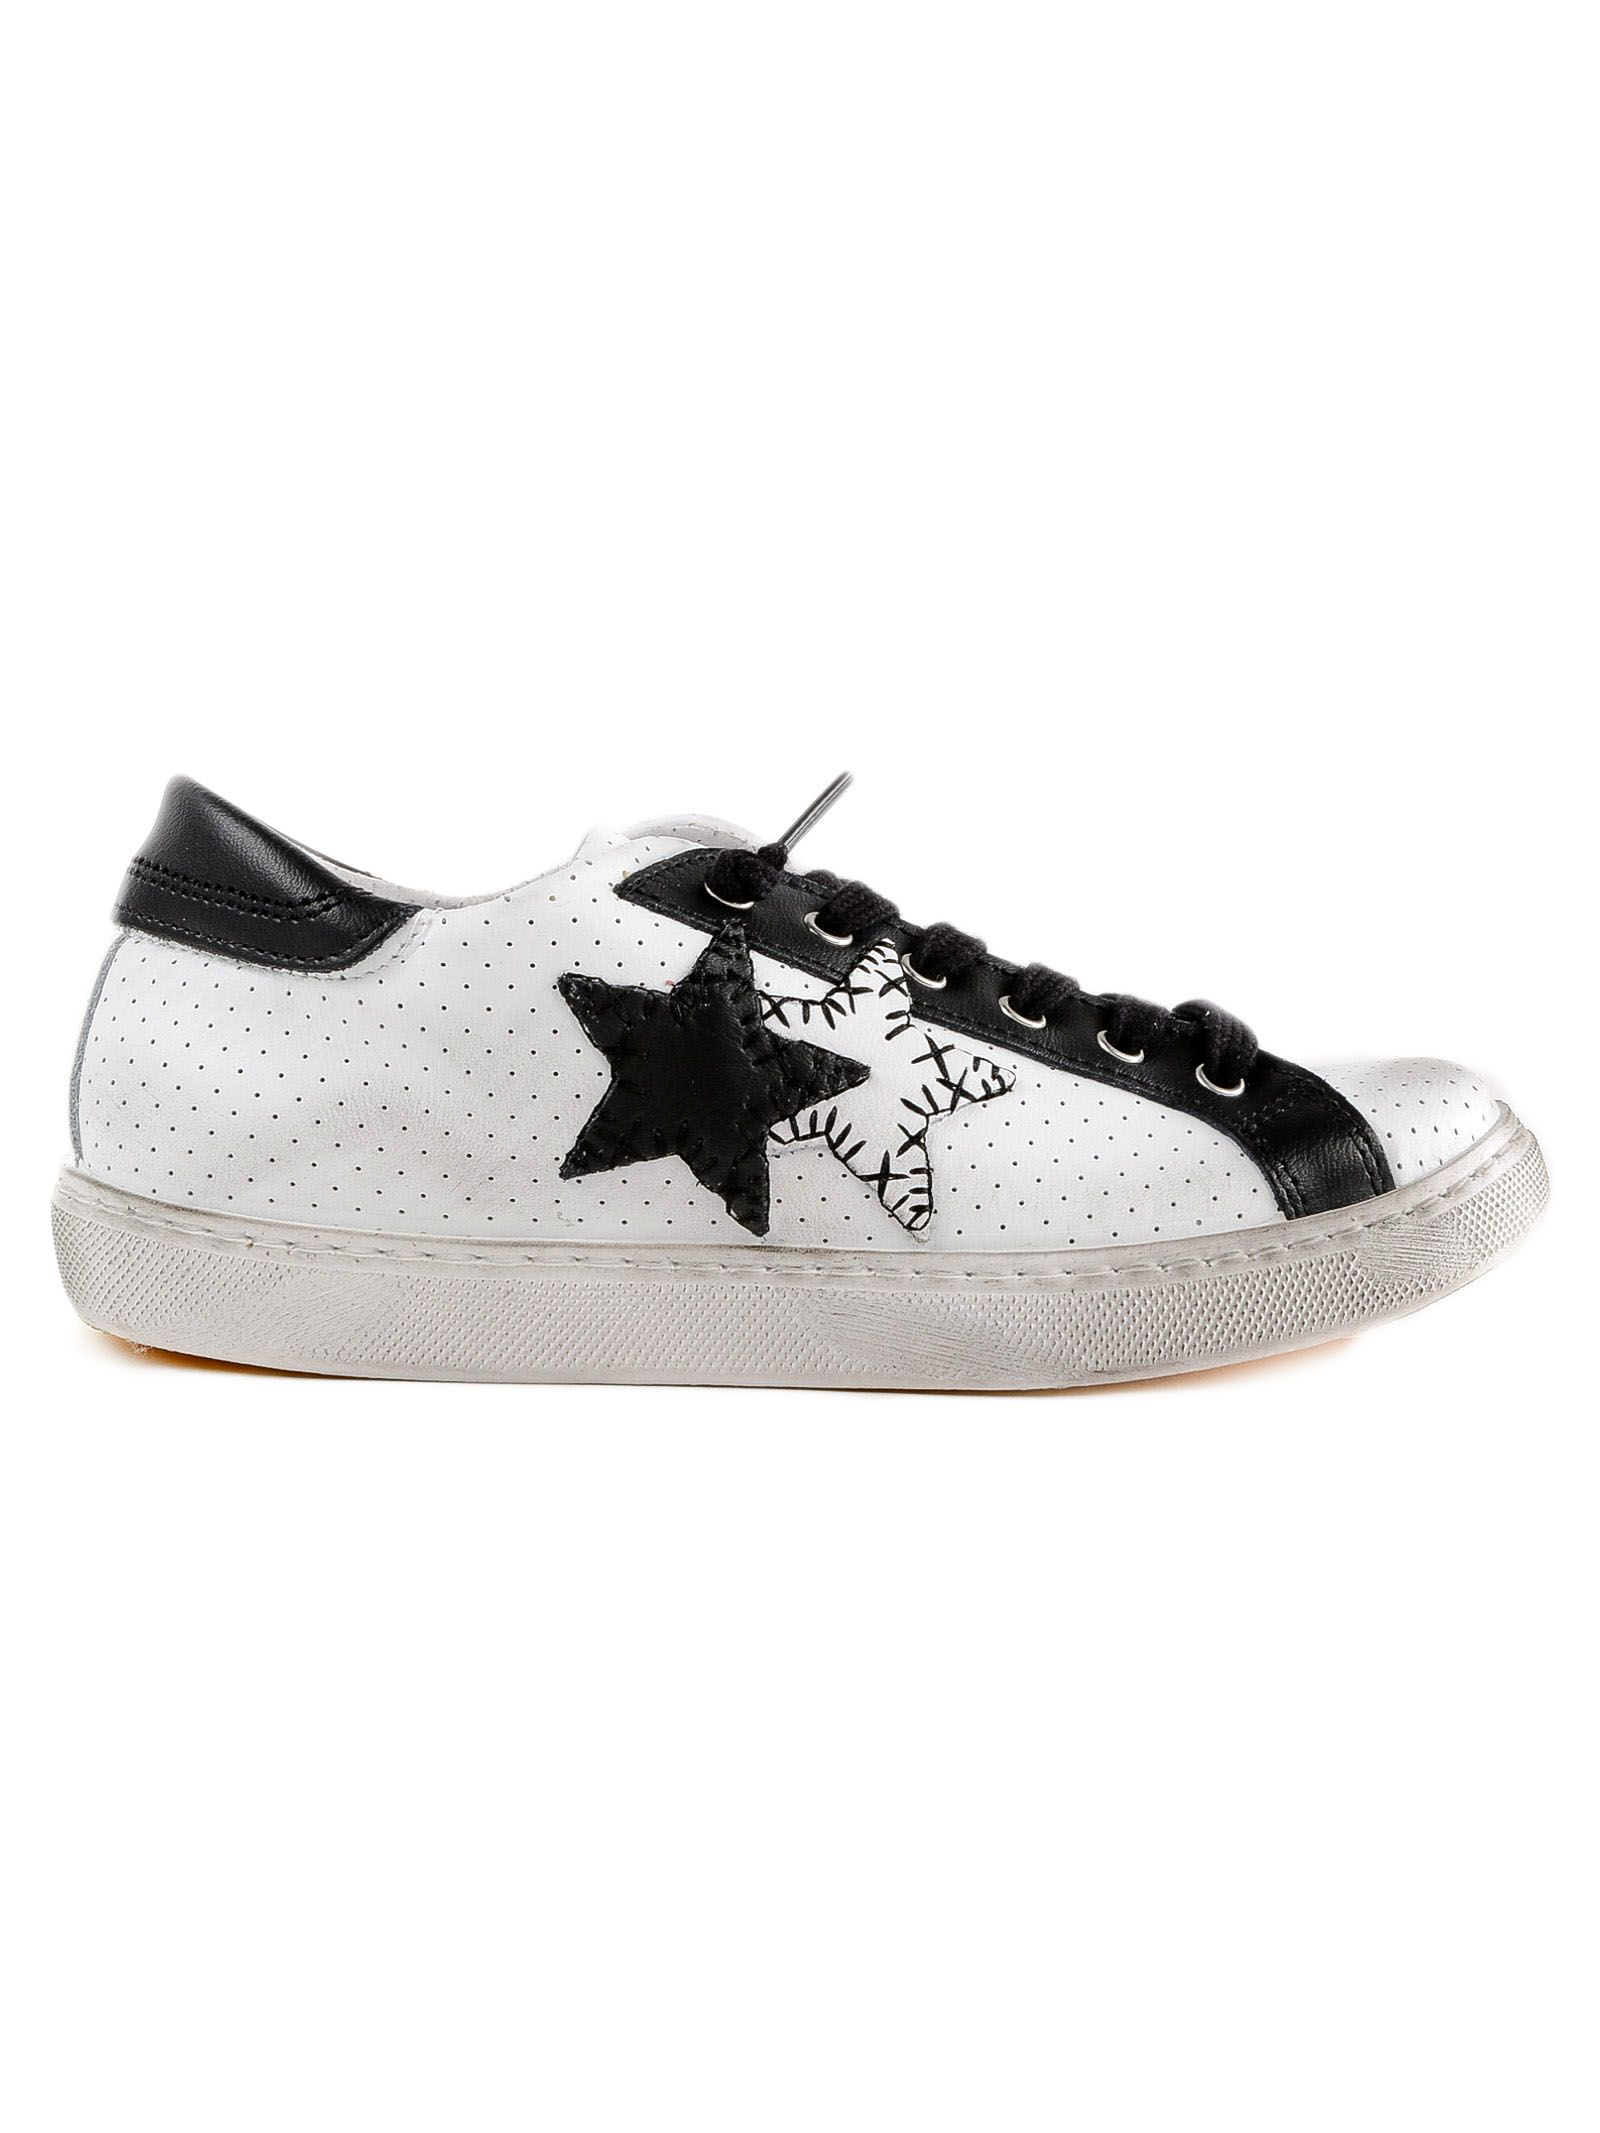 2STAR 2 Star Two Star Patch Sneakers in White/Black